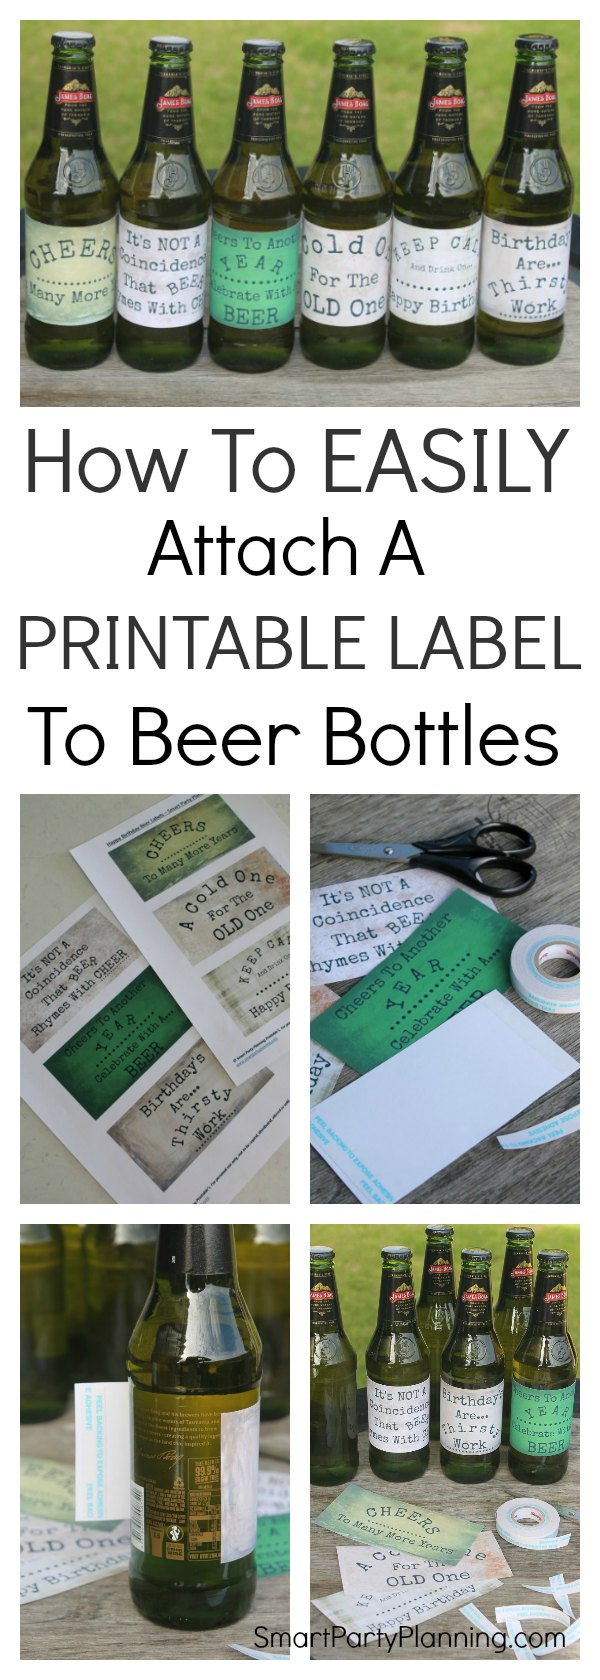 How To Easily Attach A Printable Label To Beer Bottles